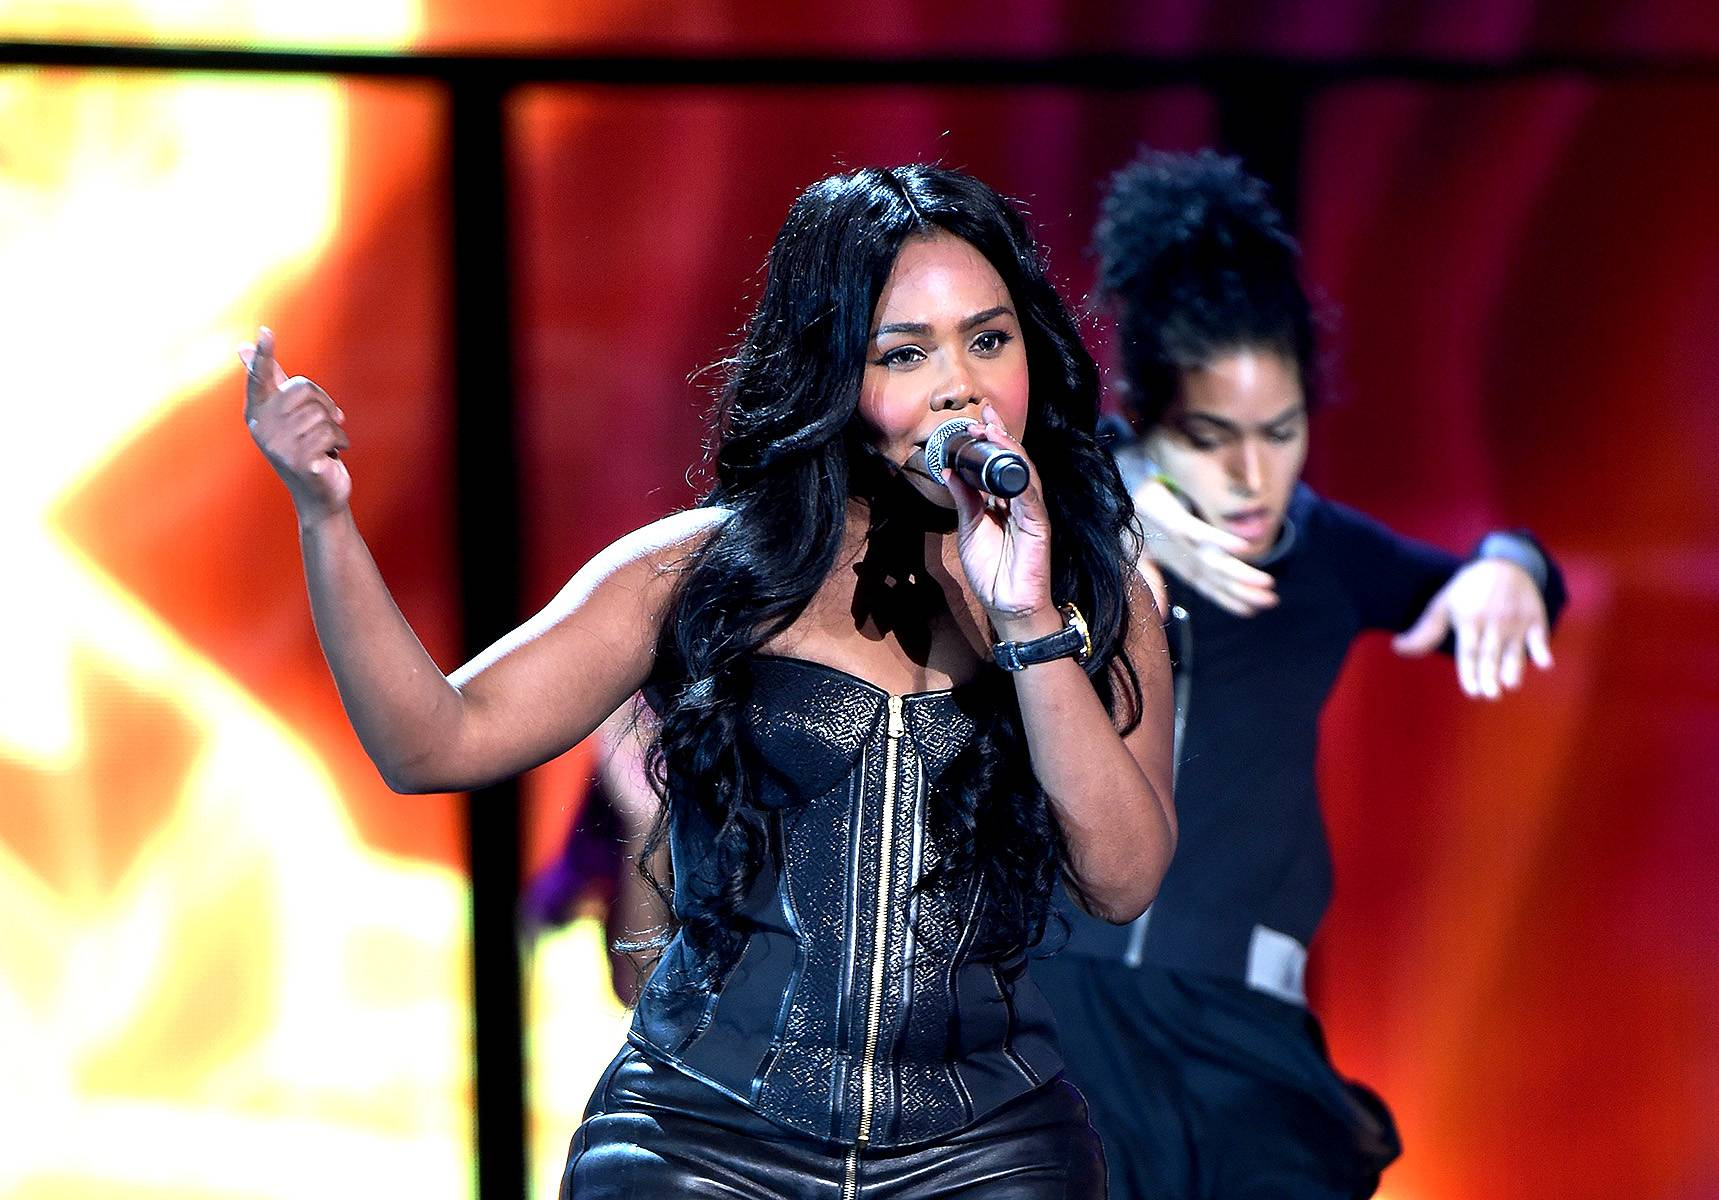 Lil' Kim the Queen B, So You Best Take Heed - Pint-sized diva Lil' Kim rocks the stage in rehearsals.(Photo: Ethan Miller/Getty Images for BET)